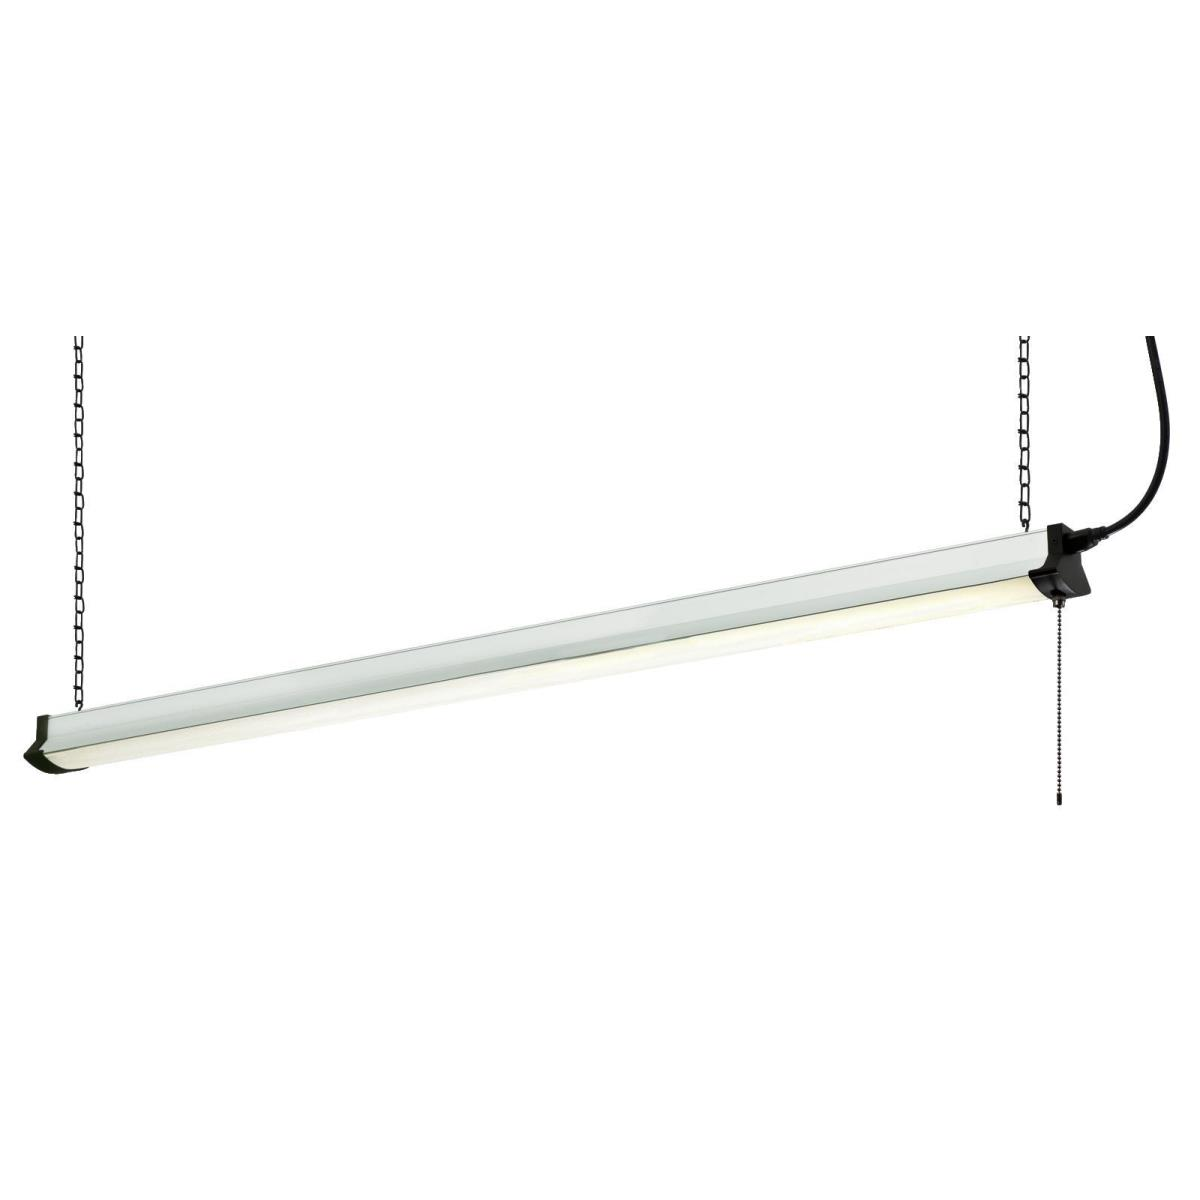 "48"" LED Shop Light Silver Finish with Frosted Lens"